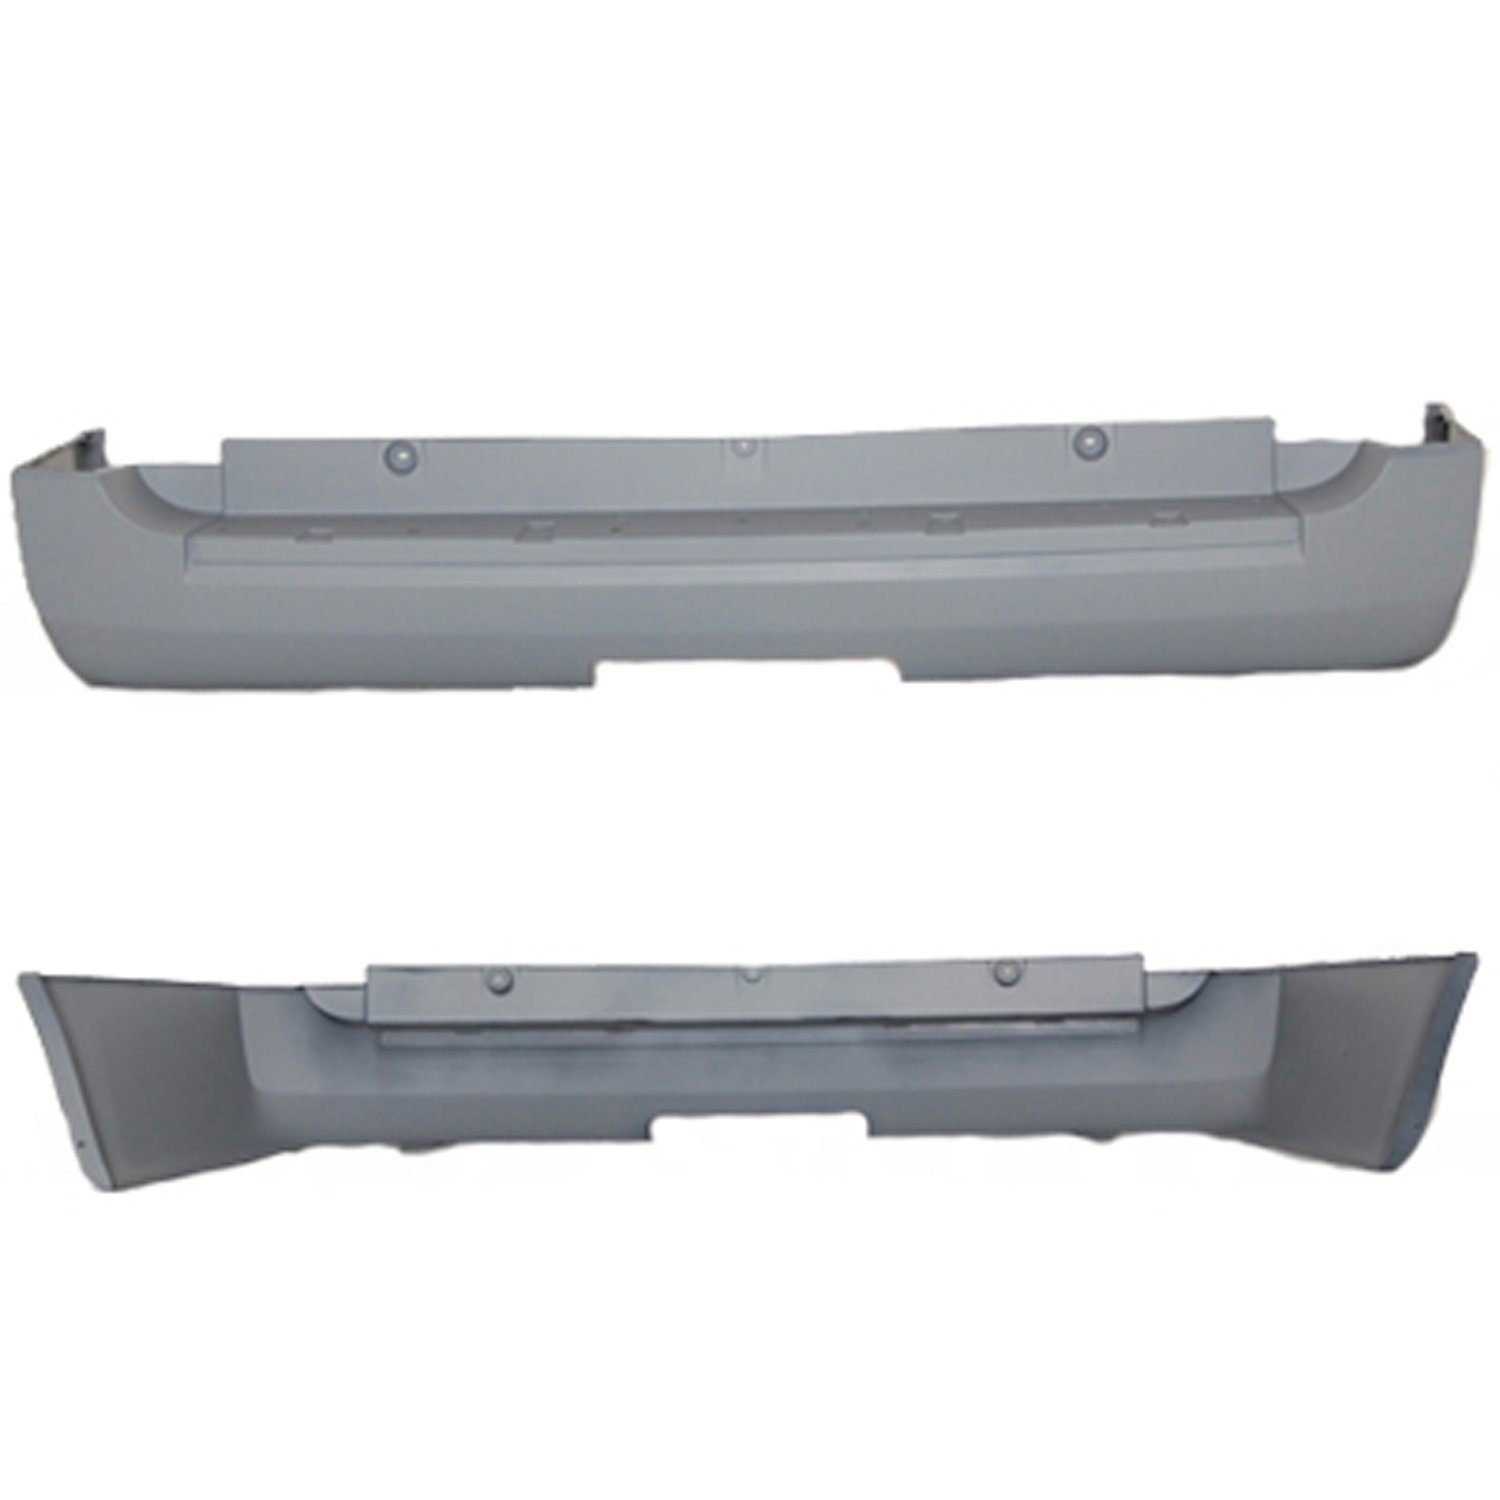 Get Quotations Crash Parts Plus Fo1100614 Primed Rear Per Cover For 07 10 Ford